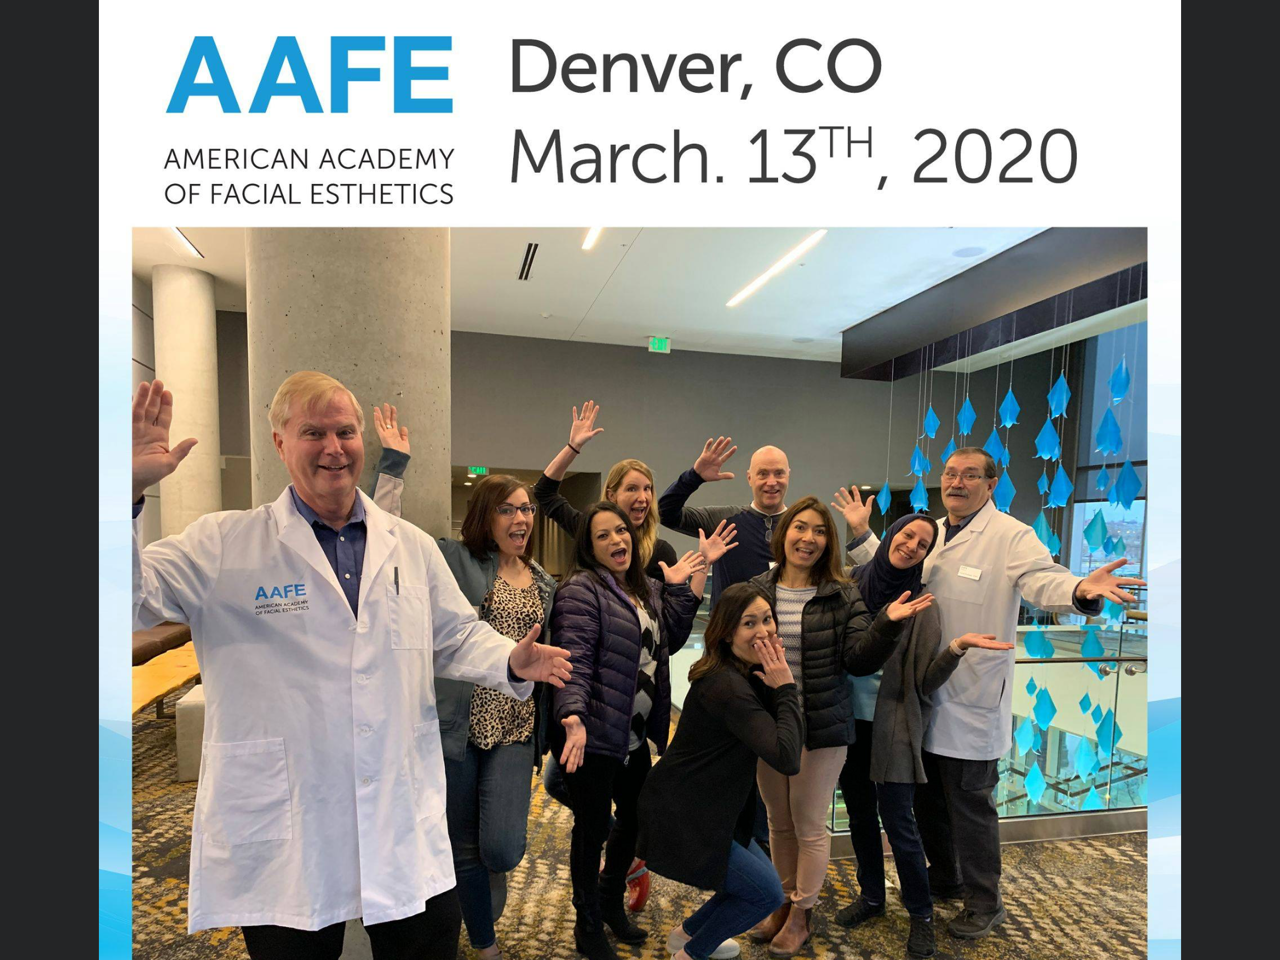 photo-of-Doctor-Arpin-with-other doctors-at-Denver-conference